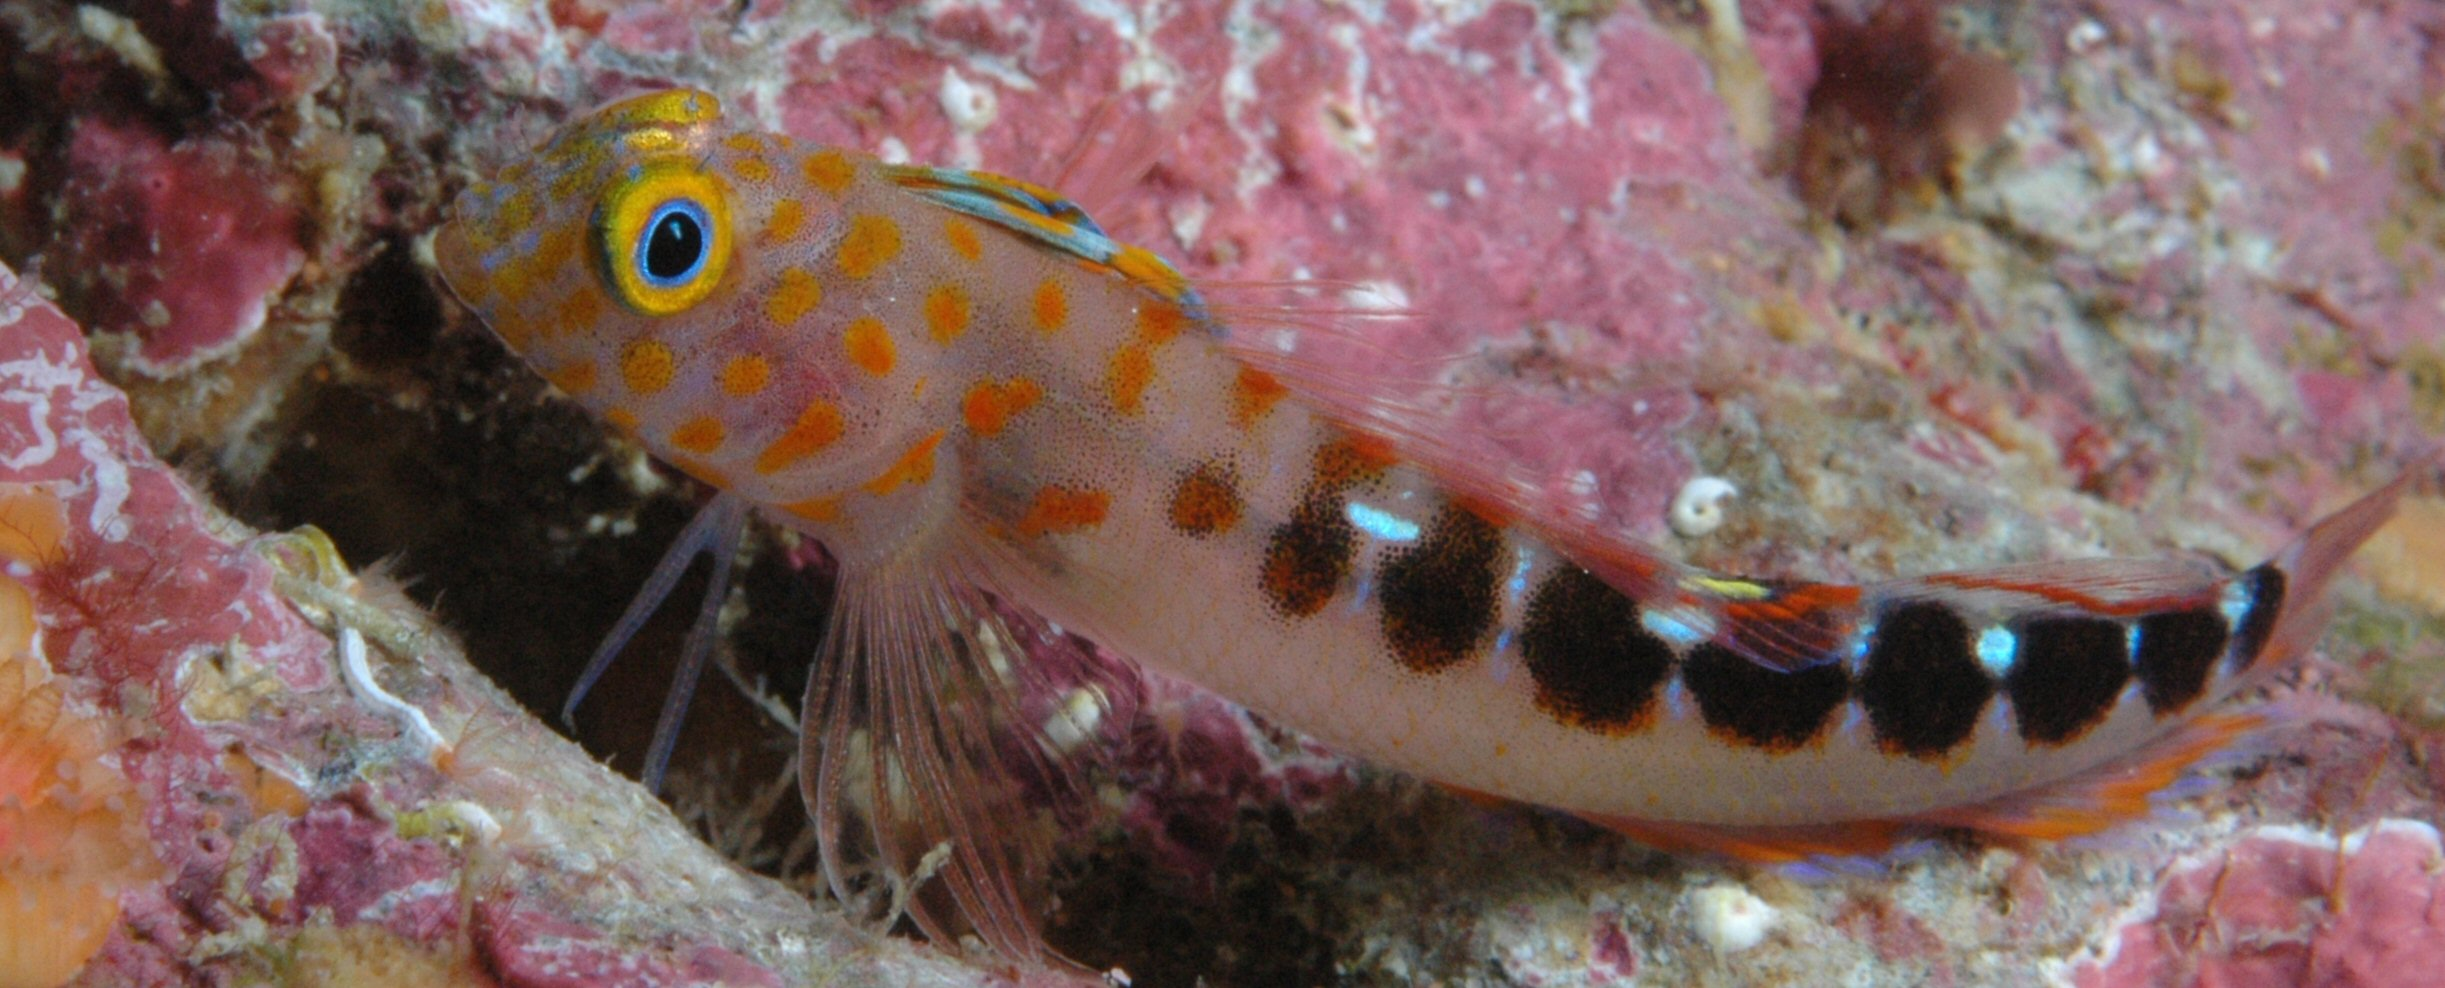 Triplefin blenny wallpaper